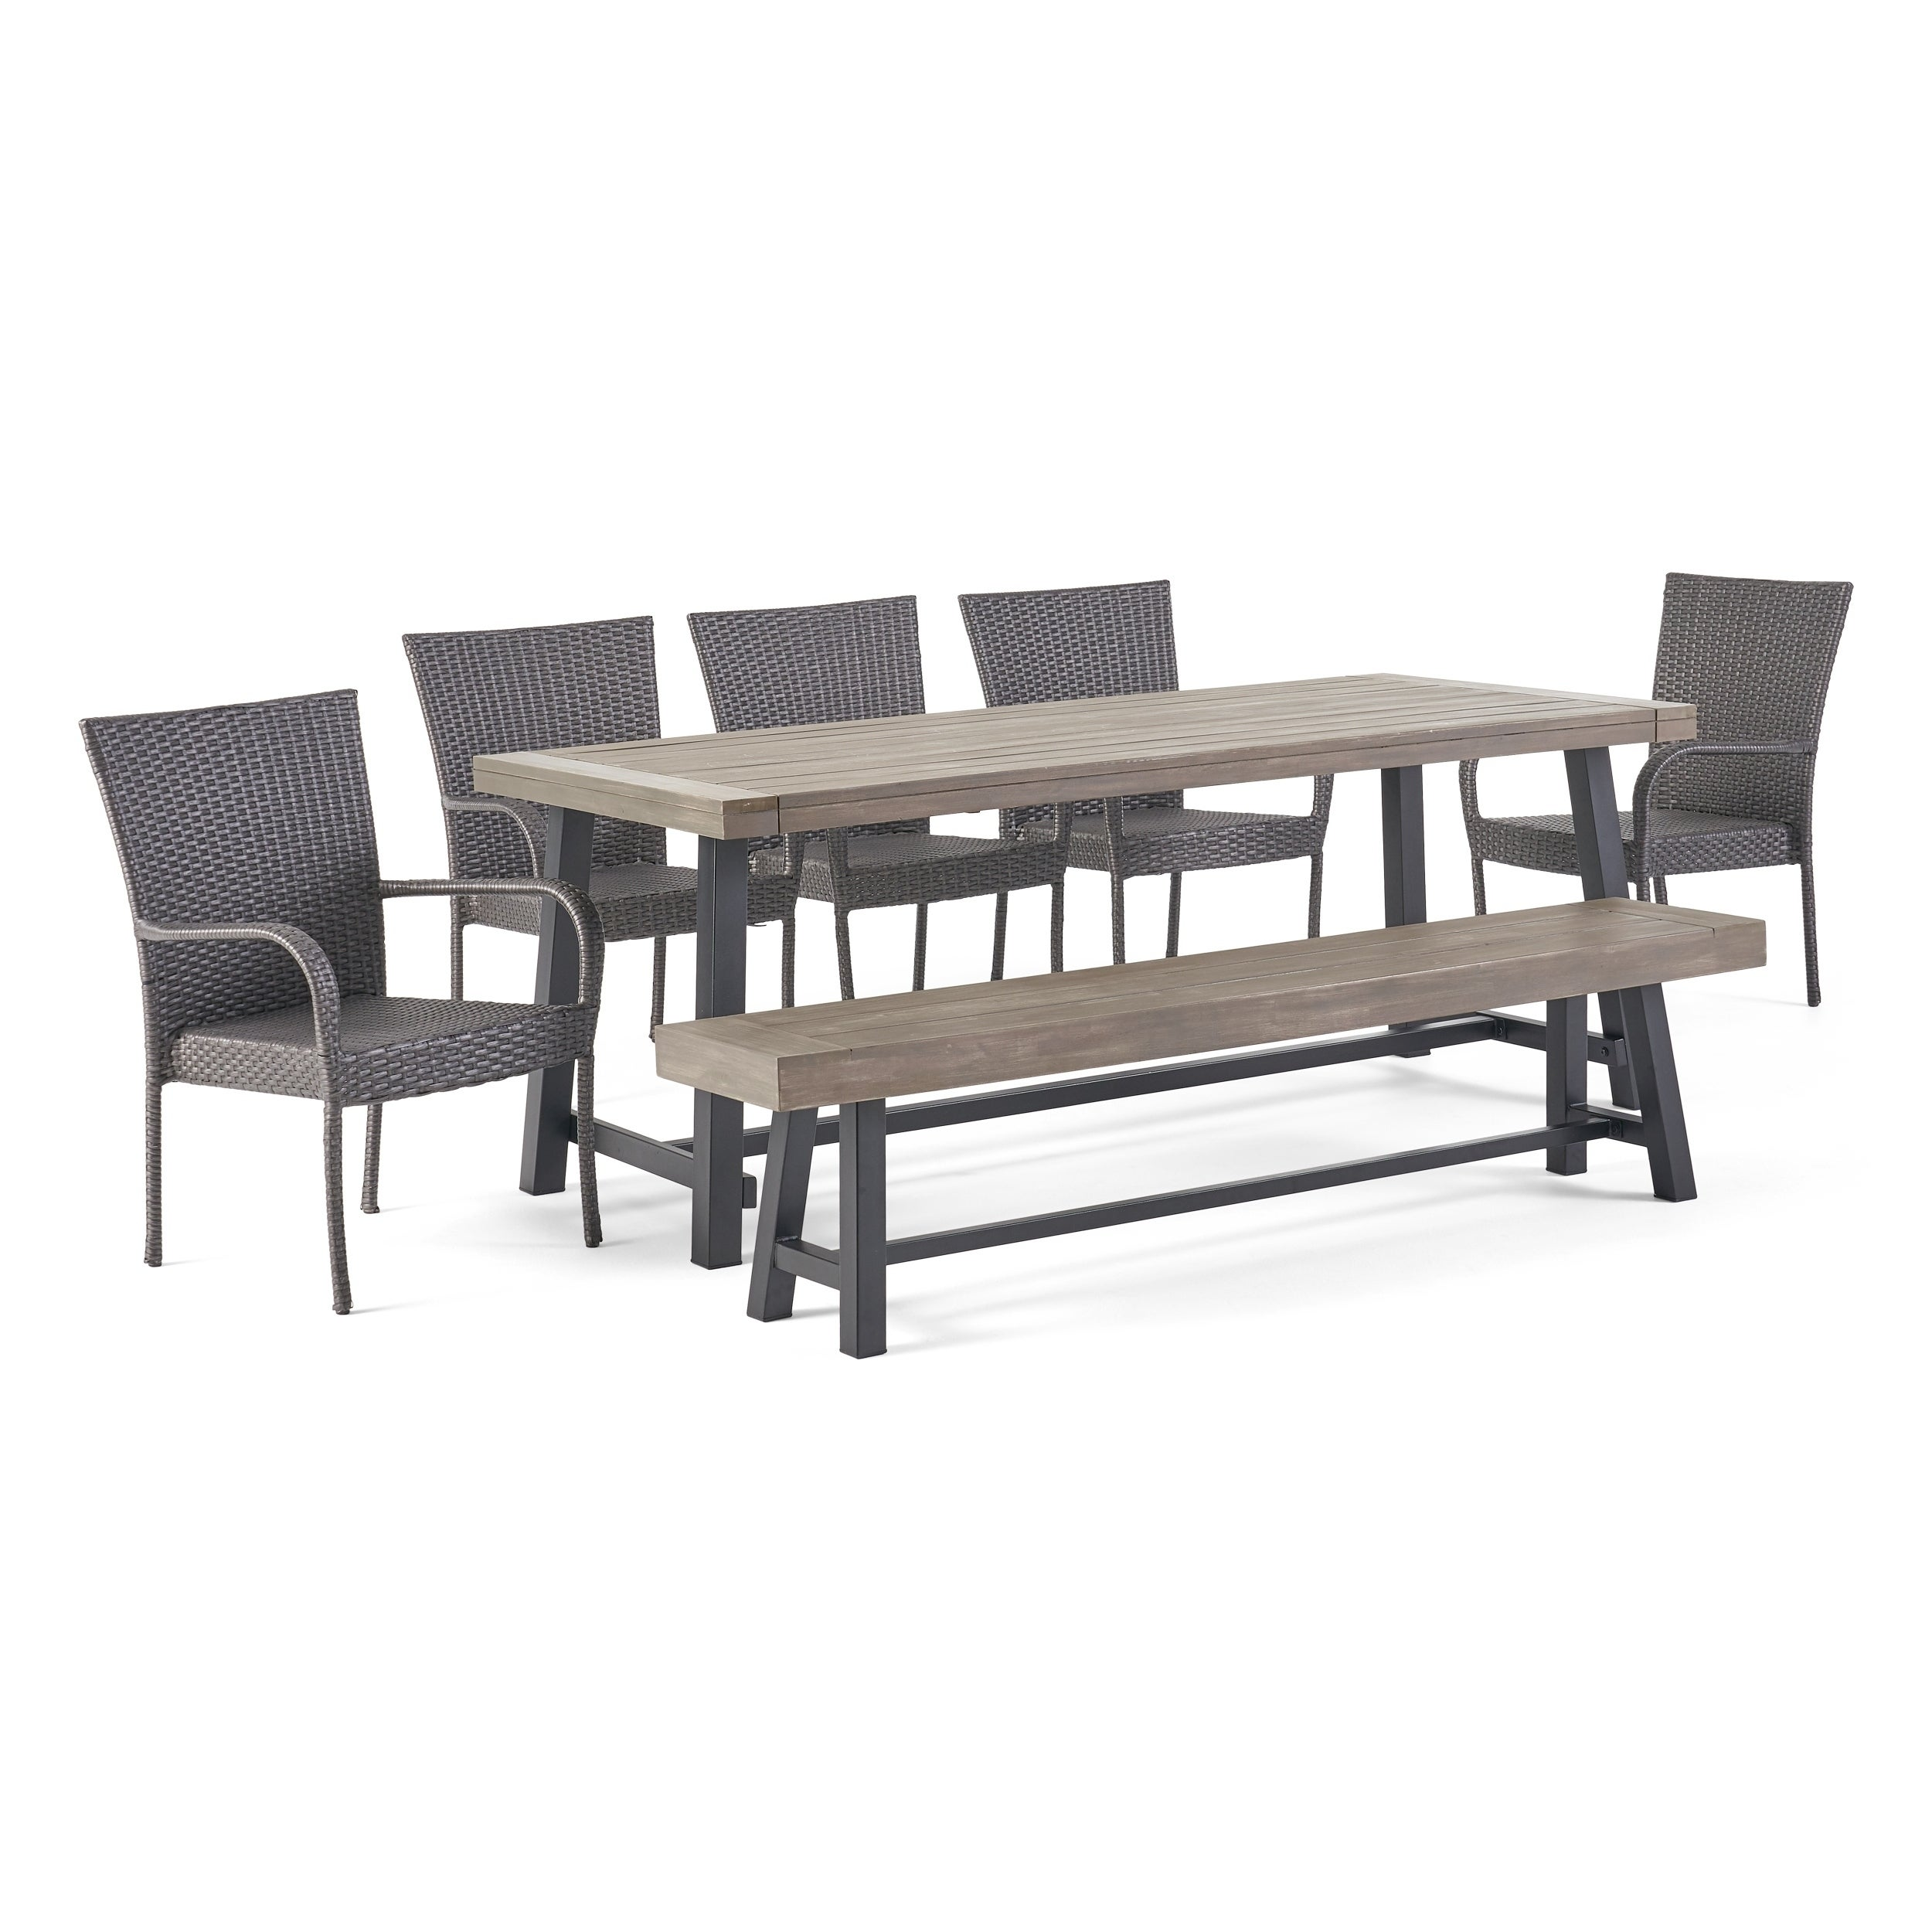 Picture of: Shop Black Friday Deals On Lyons Outdoor Rustic 8 Seater Dining Set By Christopher Knight Home Overstock 30115193 Teak Finish Black Multi Brown